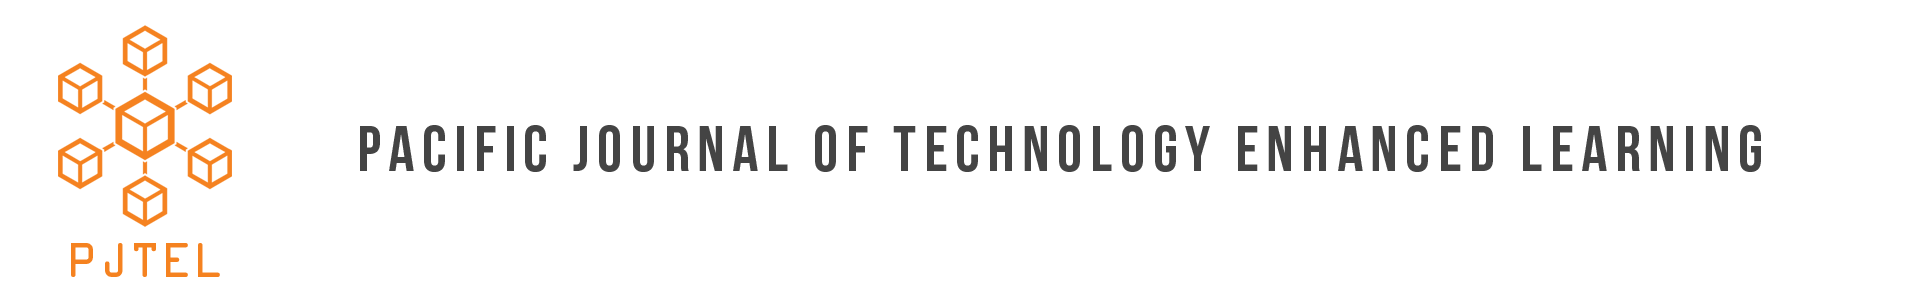 Logo for the Pacific Journal of Technology Enhanced Learning